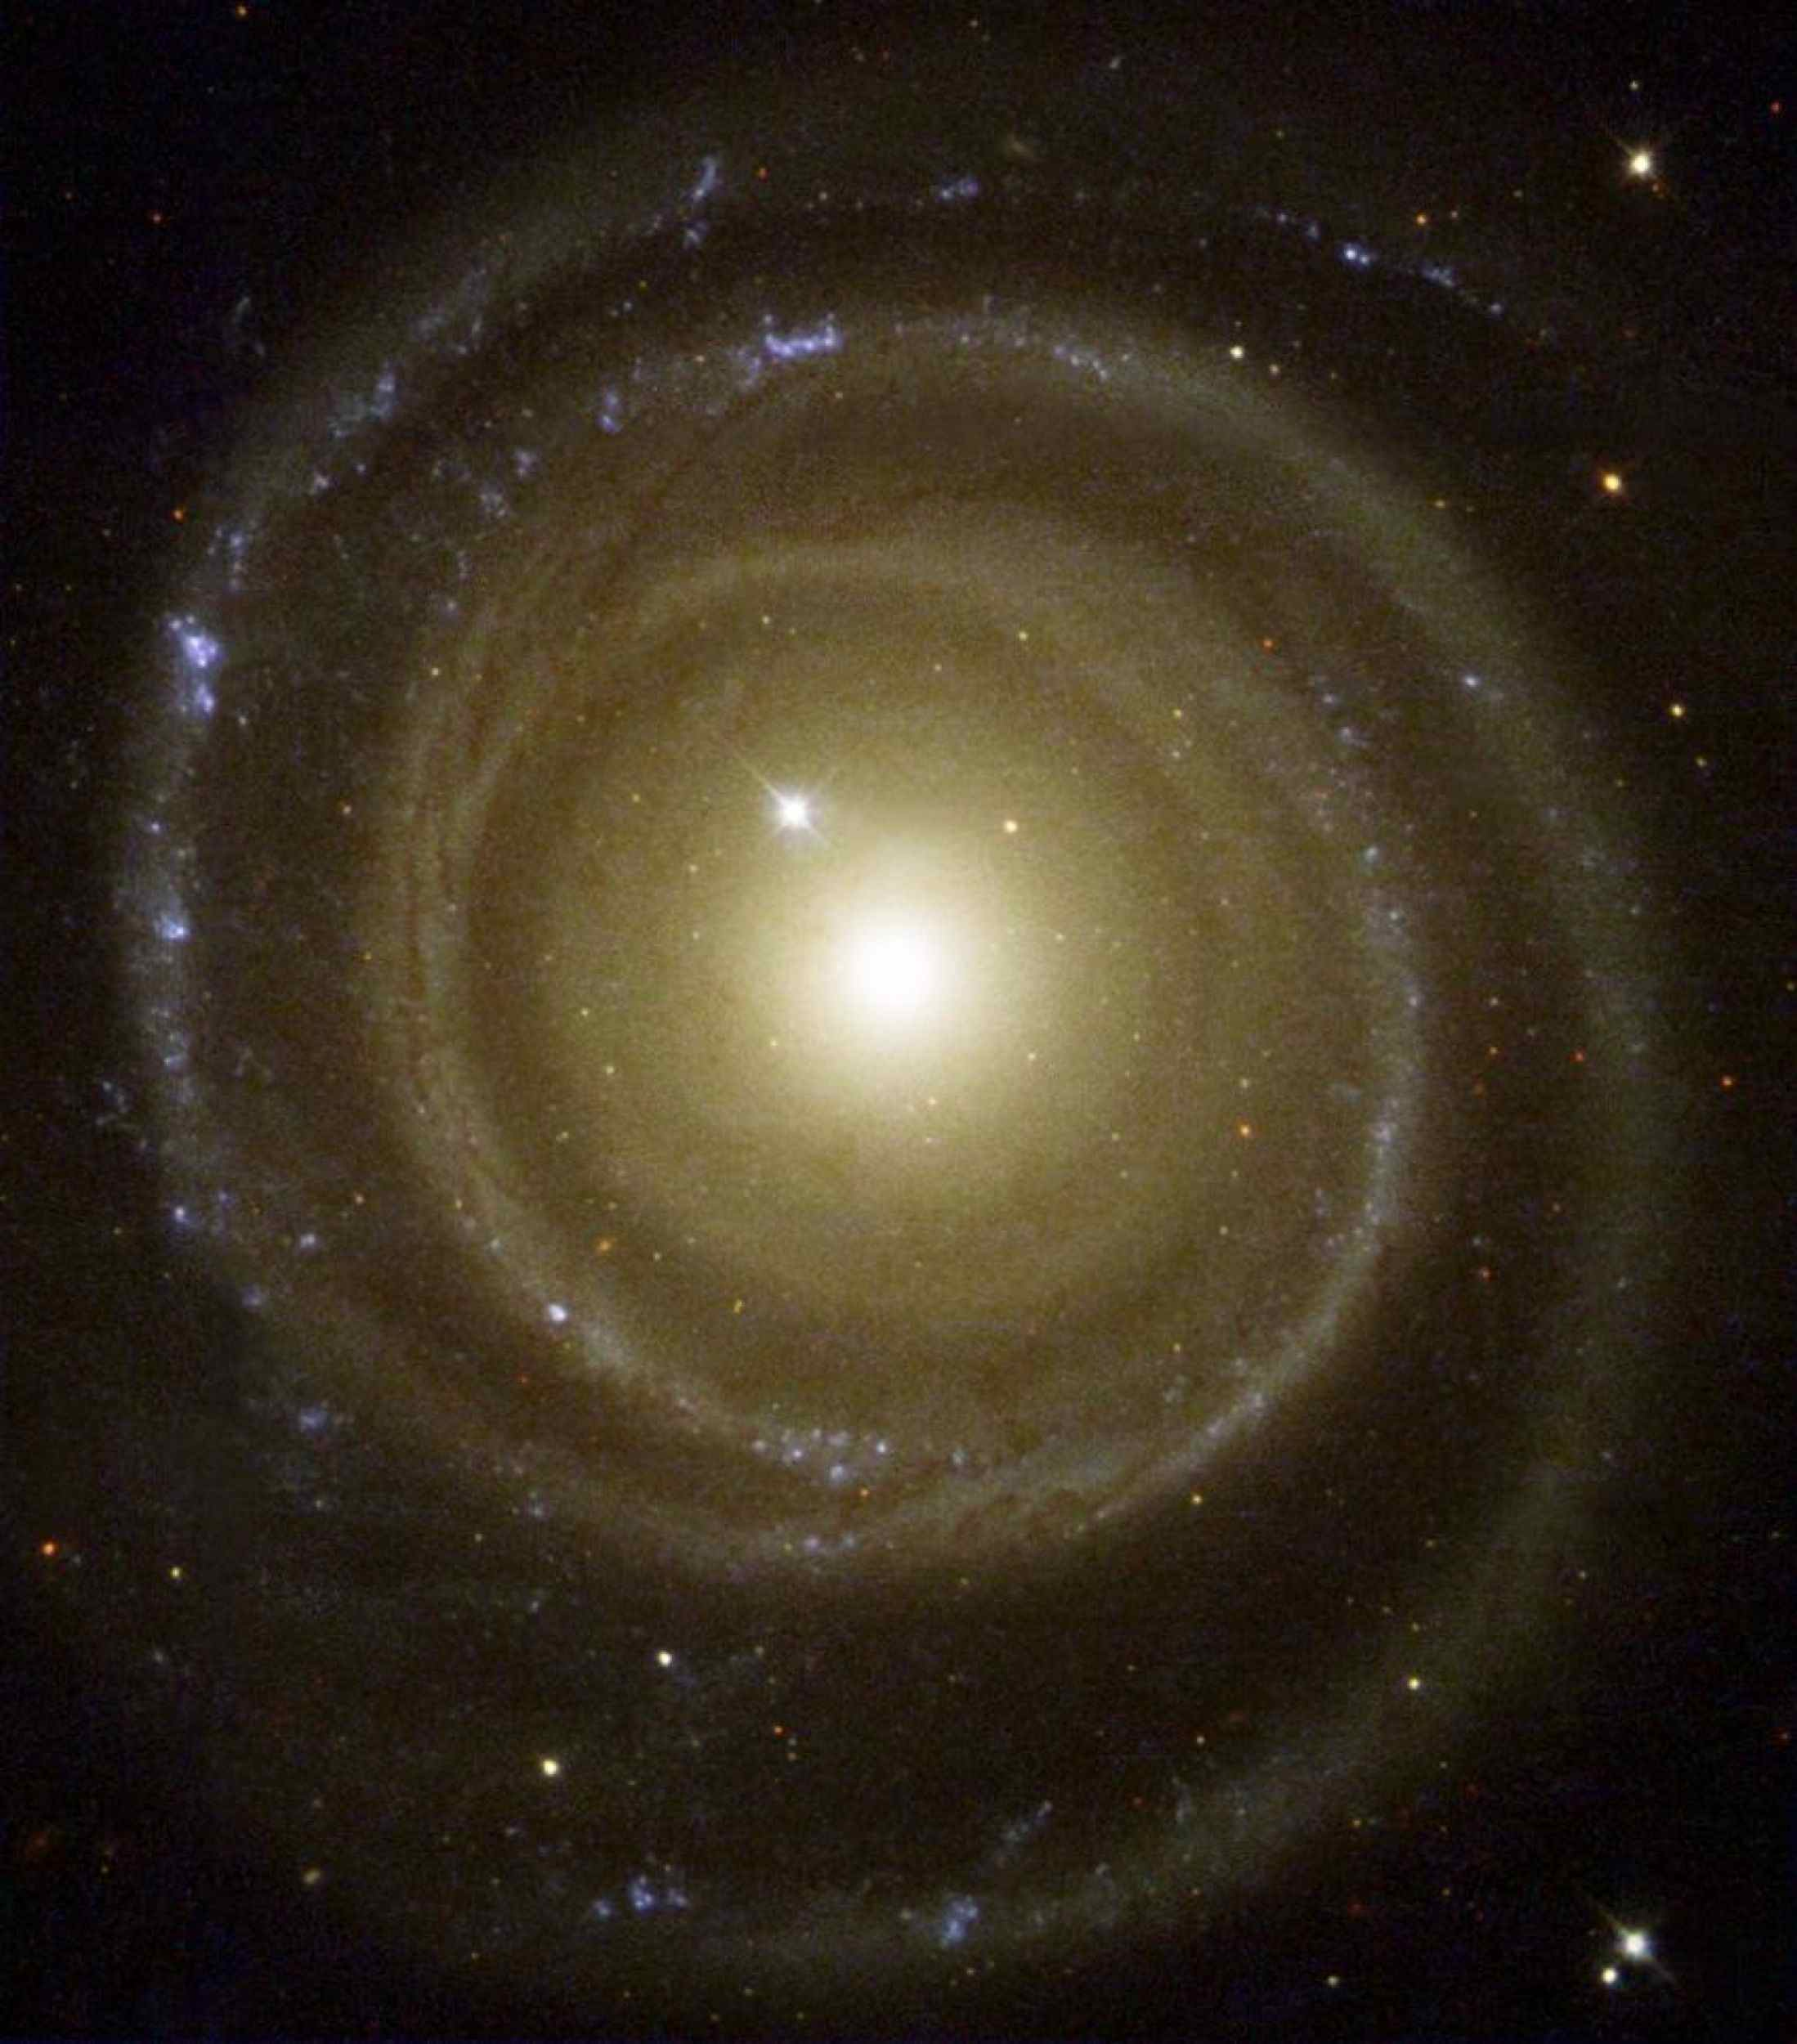 Astronomers using NASA's Hubble Space Telescope have found a spiral galaxy that may rotate in the opposite direction from what was expected.